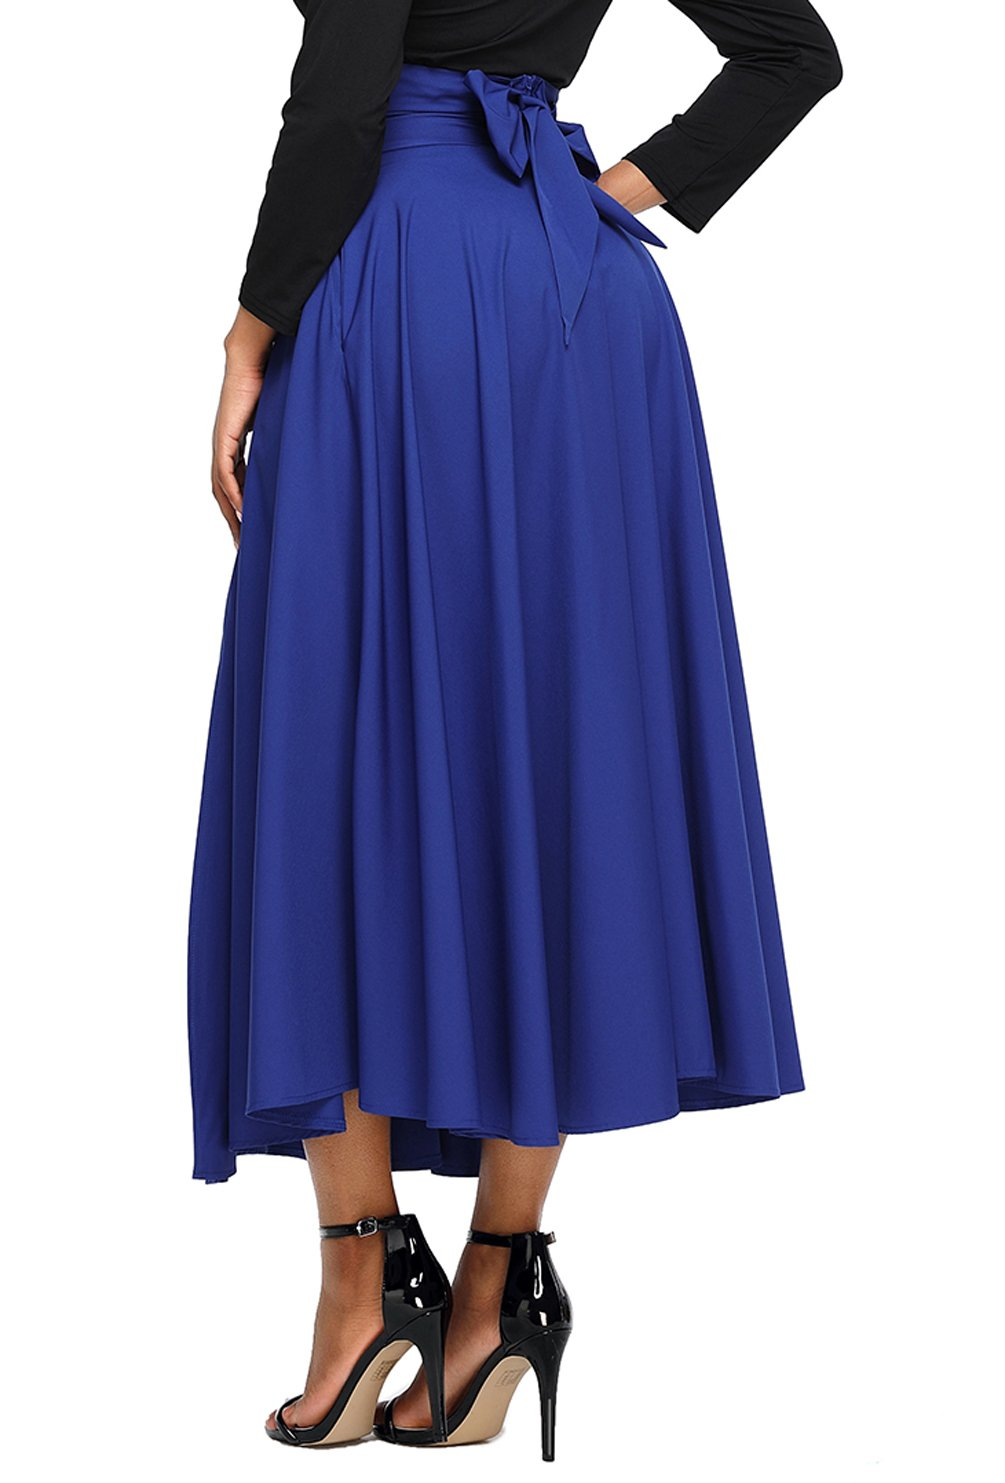 Asvivid Womens Casual Solid Button Front High Waist Summer A-Line Long Maxi Skirt with Pocket